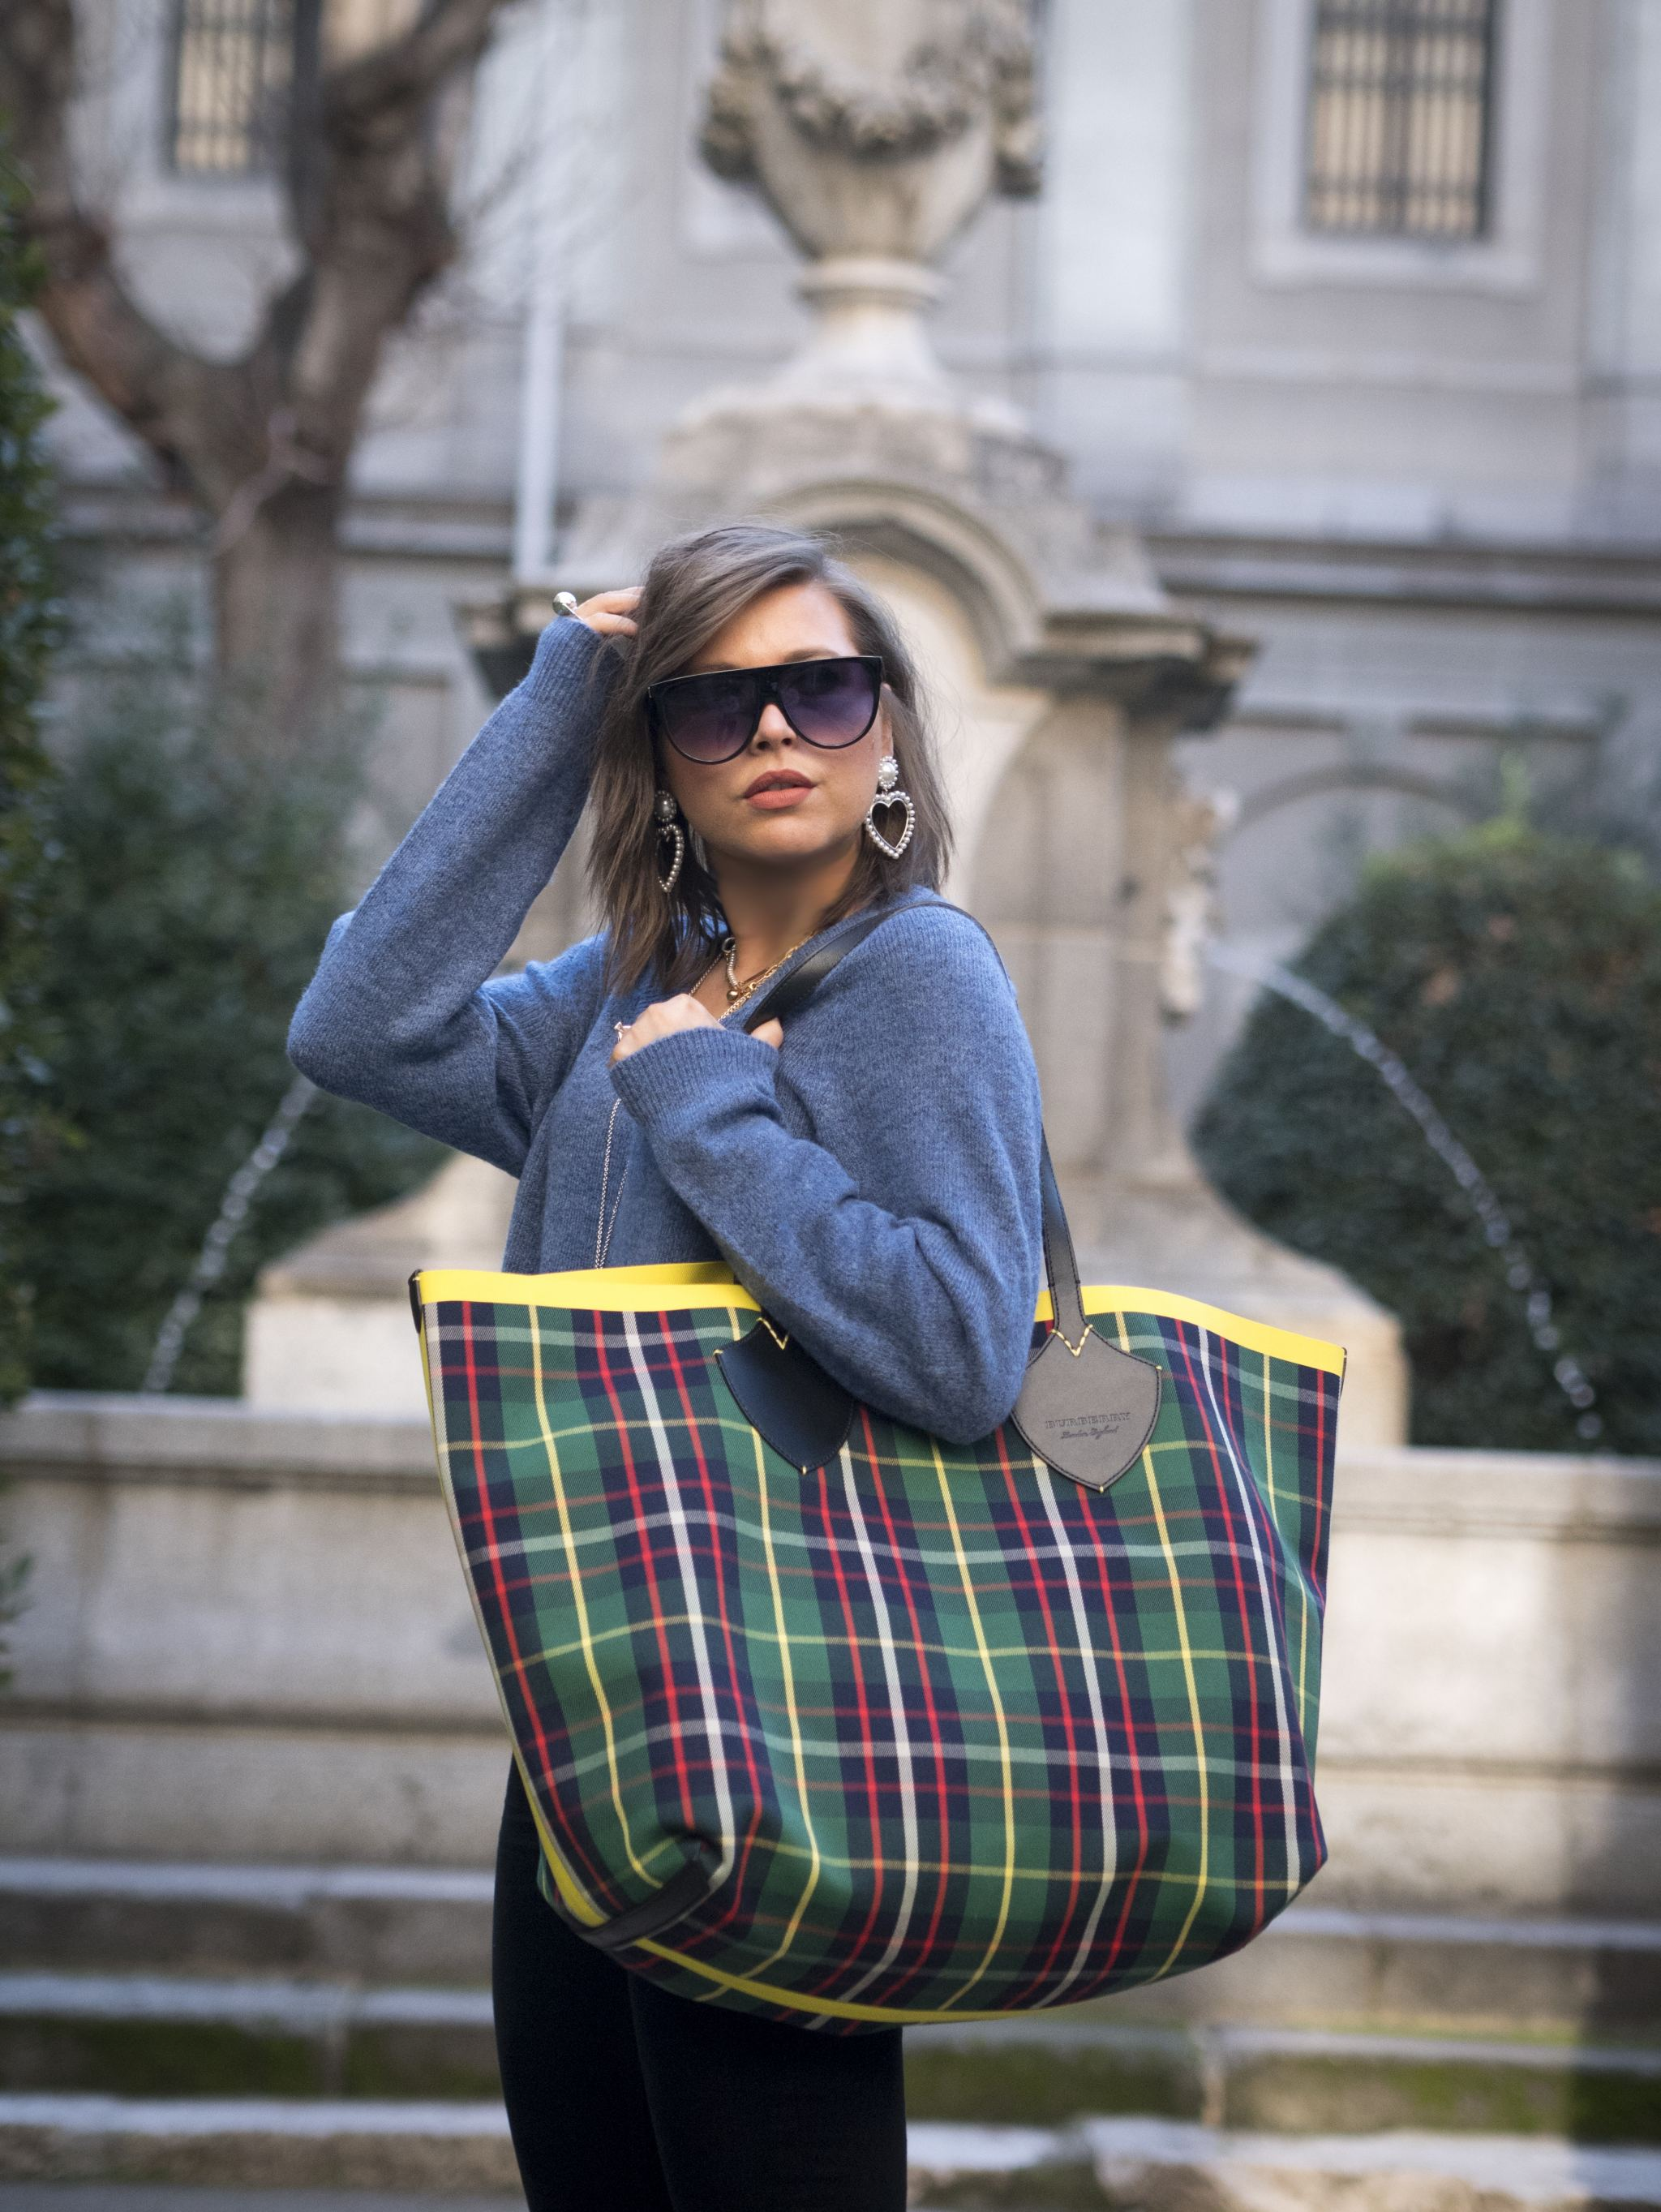 manchester fashion blogger, manchester fashion bloggers, designer bags , bags of 2019, trendy bags , Burberry Giant Tote, Balenciaga Triangle bag , Balenciaga bag , uk fashion blogger, fashion blogger